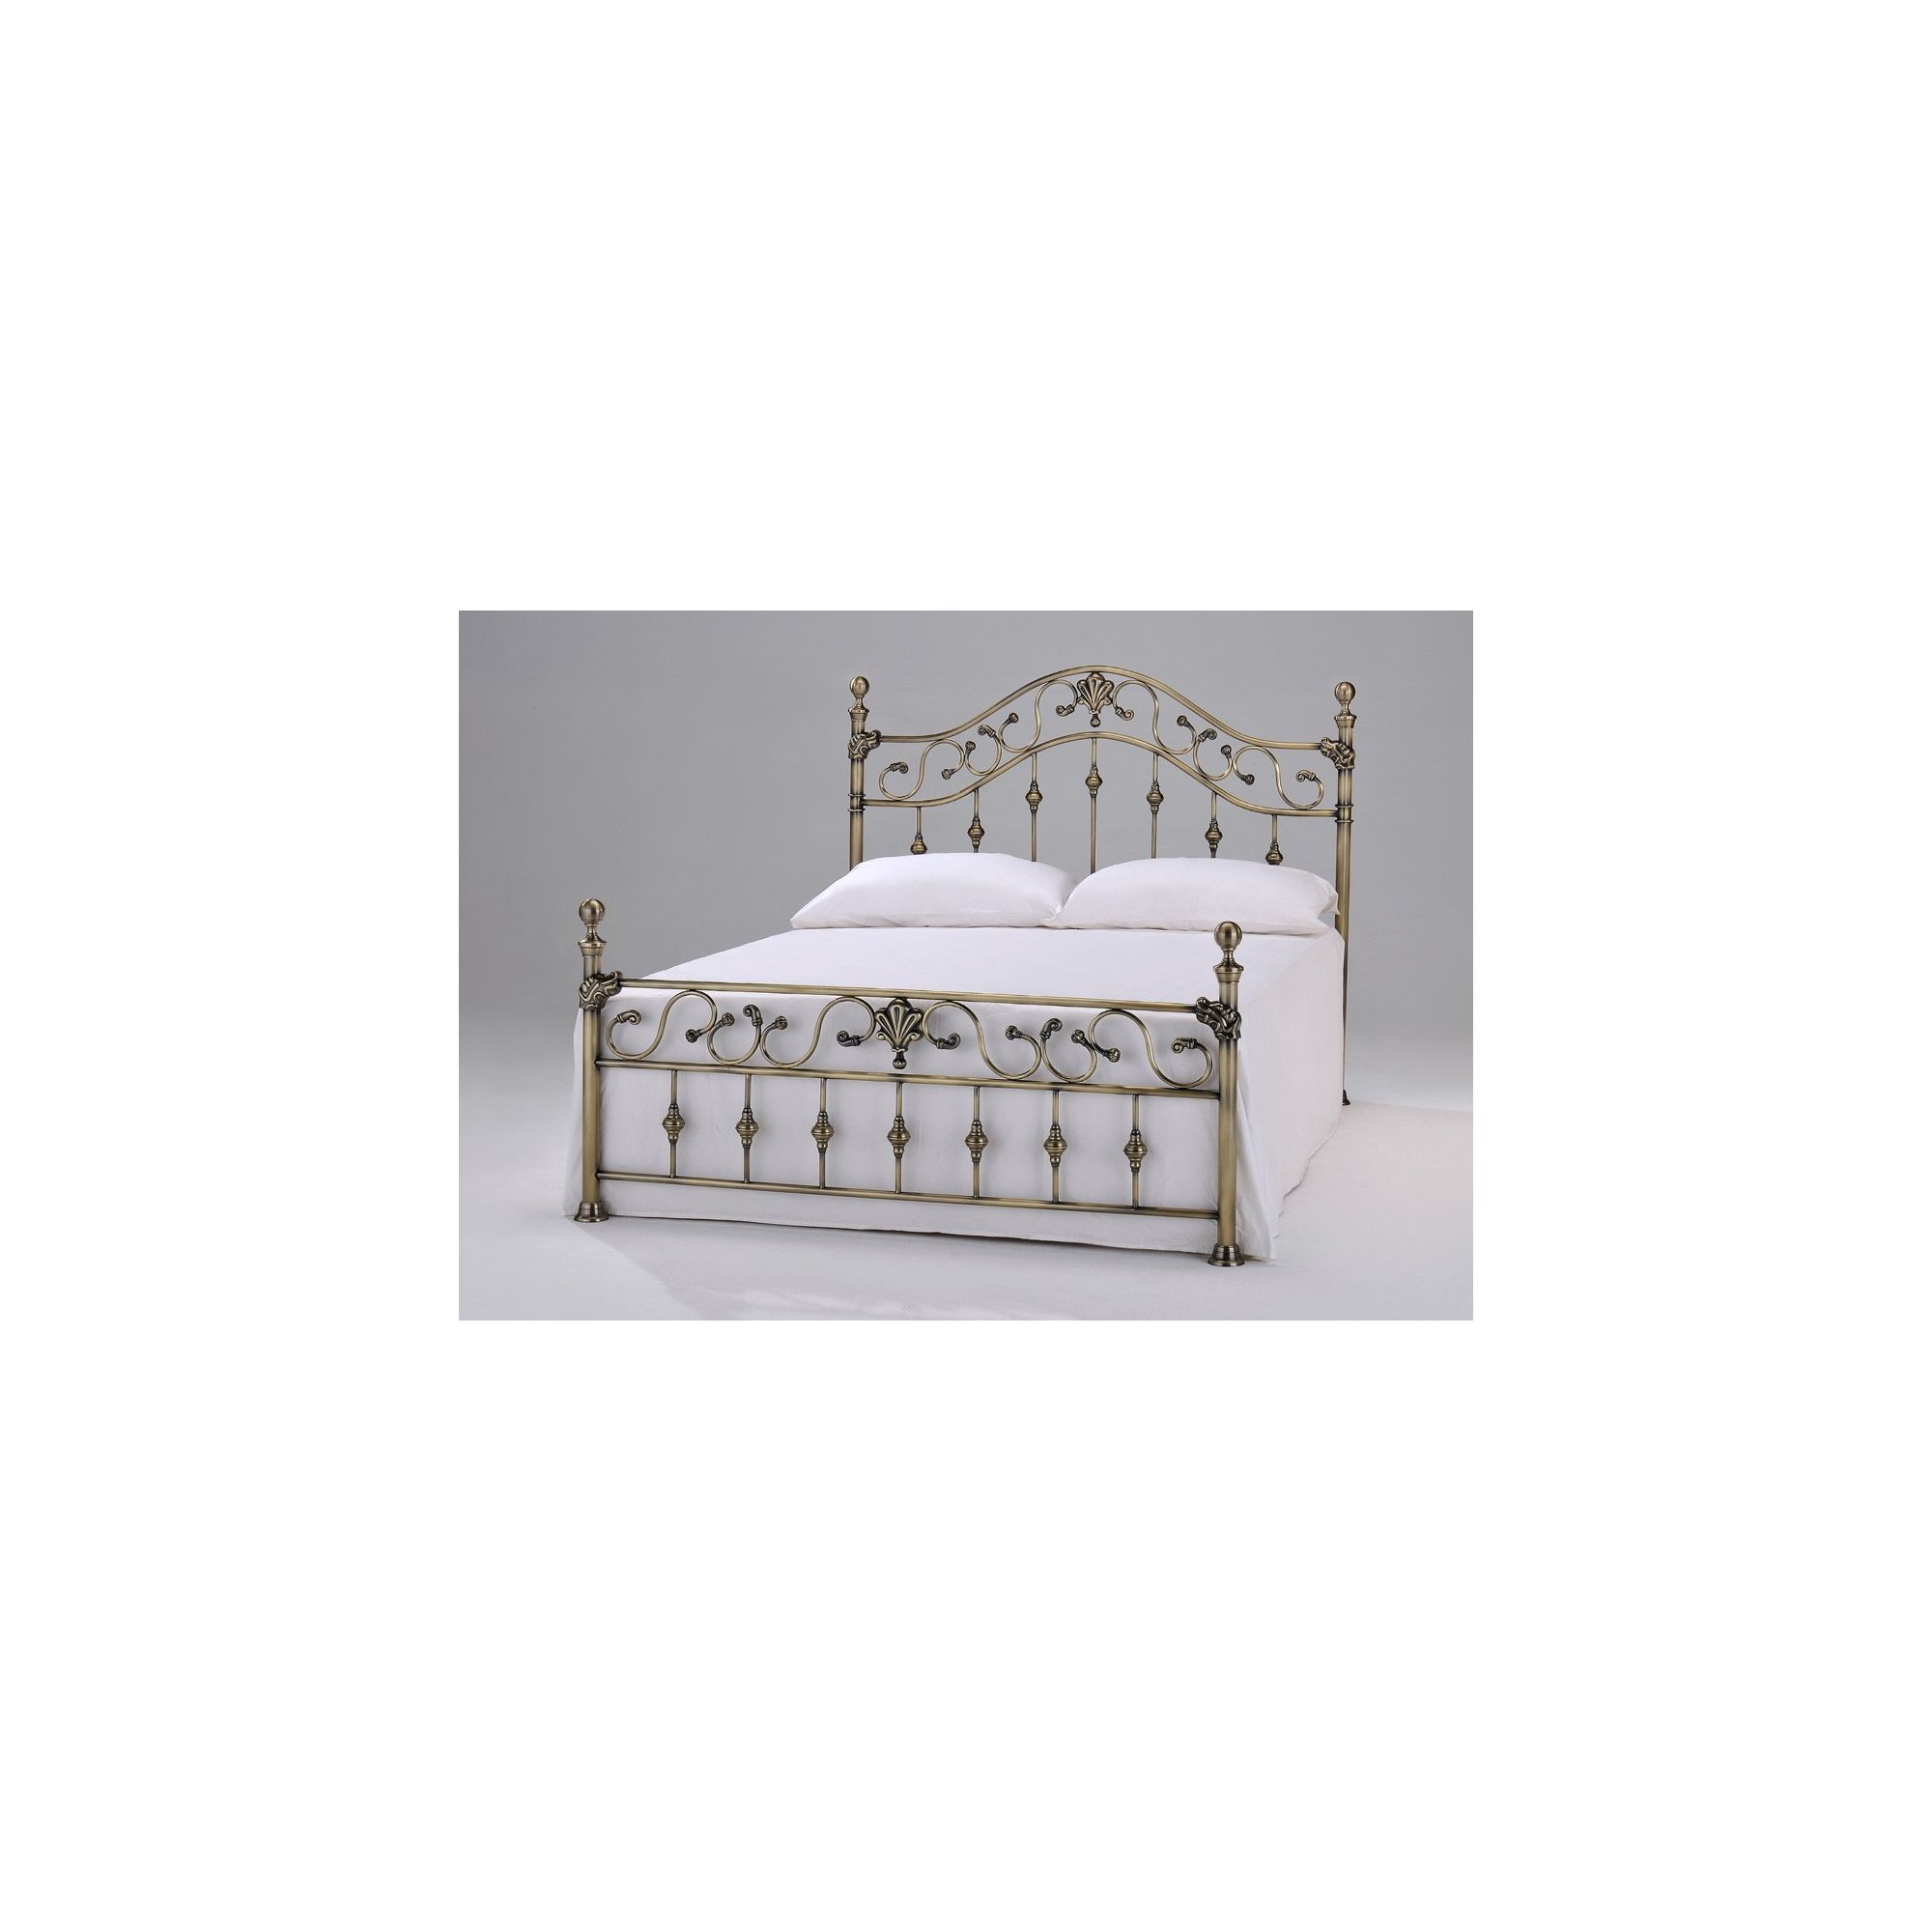 Interiors 2 suit Elizabeth Brass Bed - Double - Brass at Tesco Direct